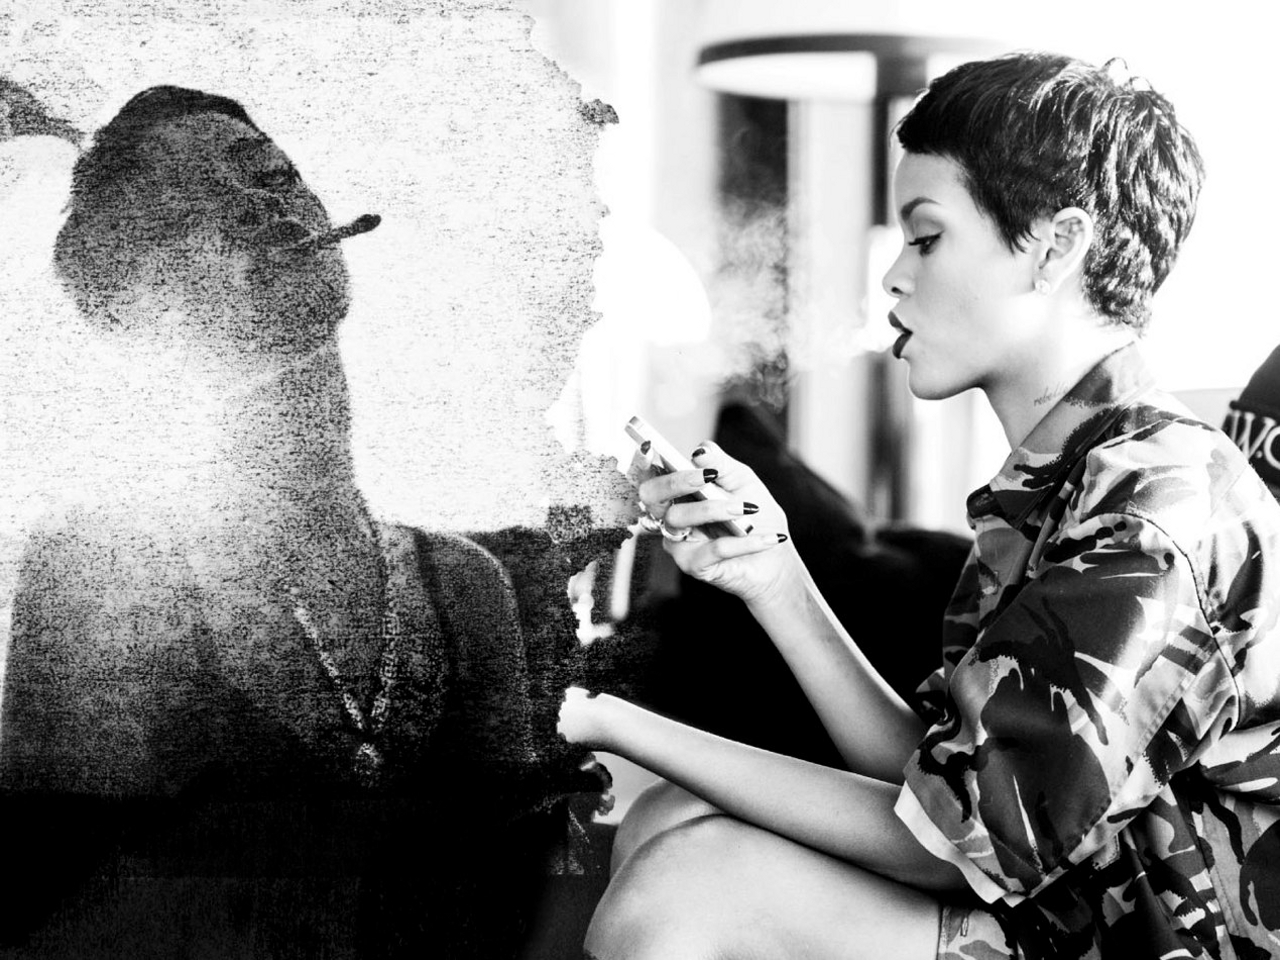 Rihanna Unapologetic - Rihanna Wallpaper (32896090) - Fanpop